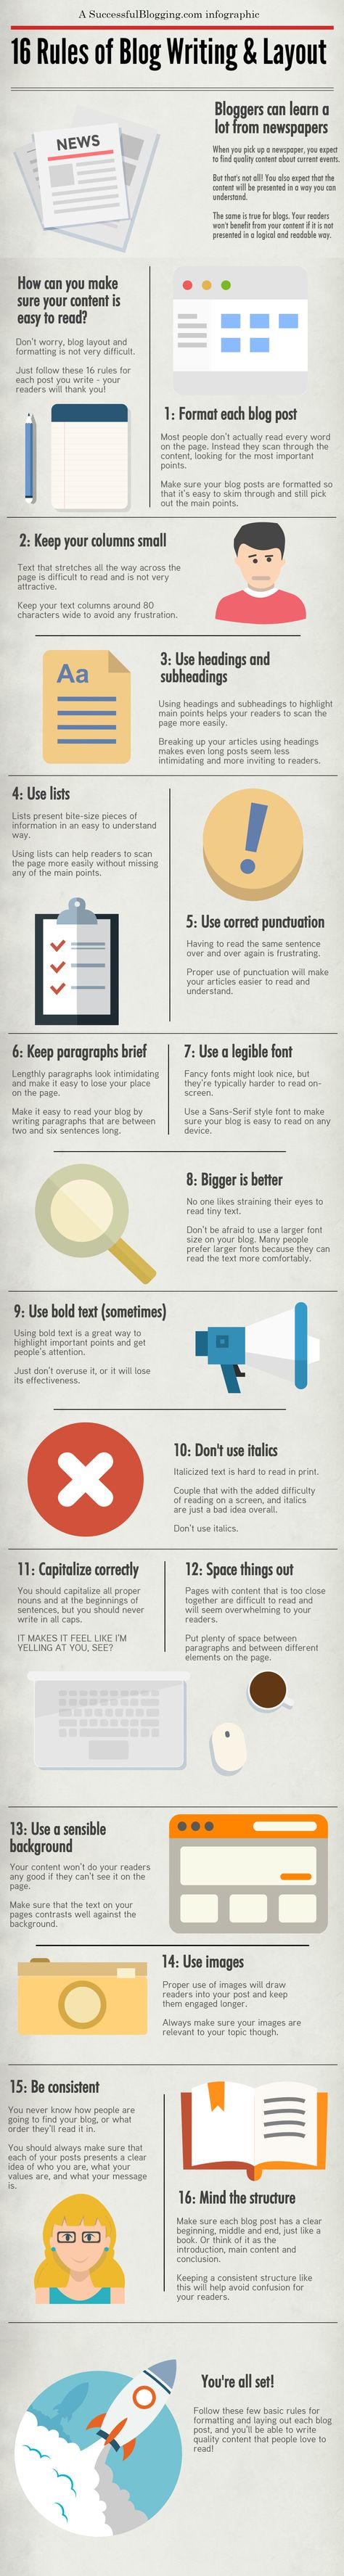 16 Rules Of Blog Writing And Layout. Which Ones Are You Breaking?